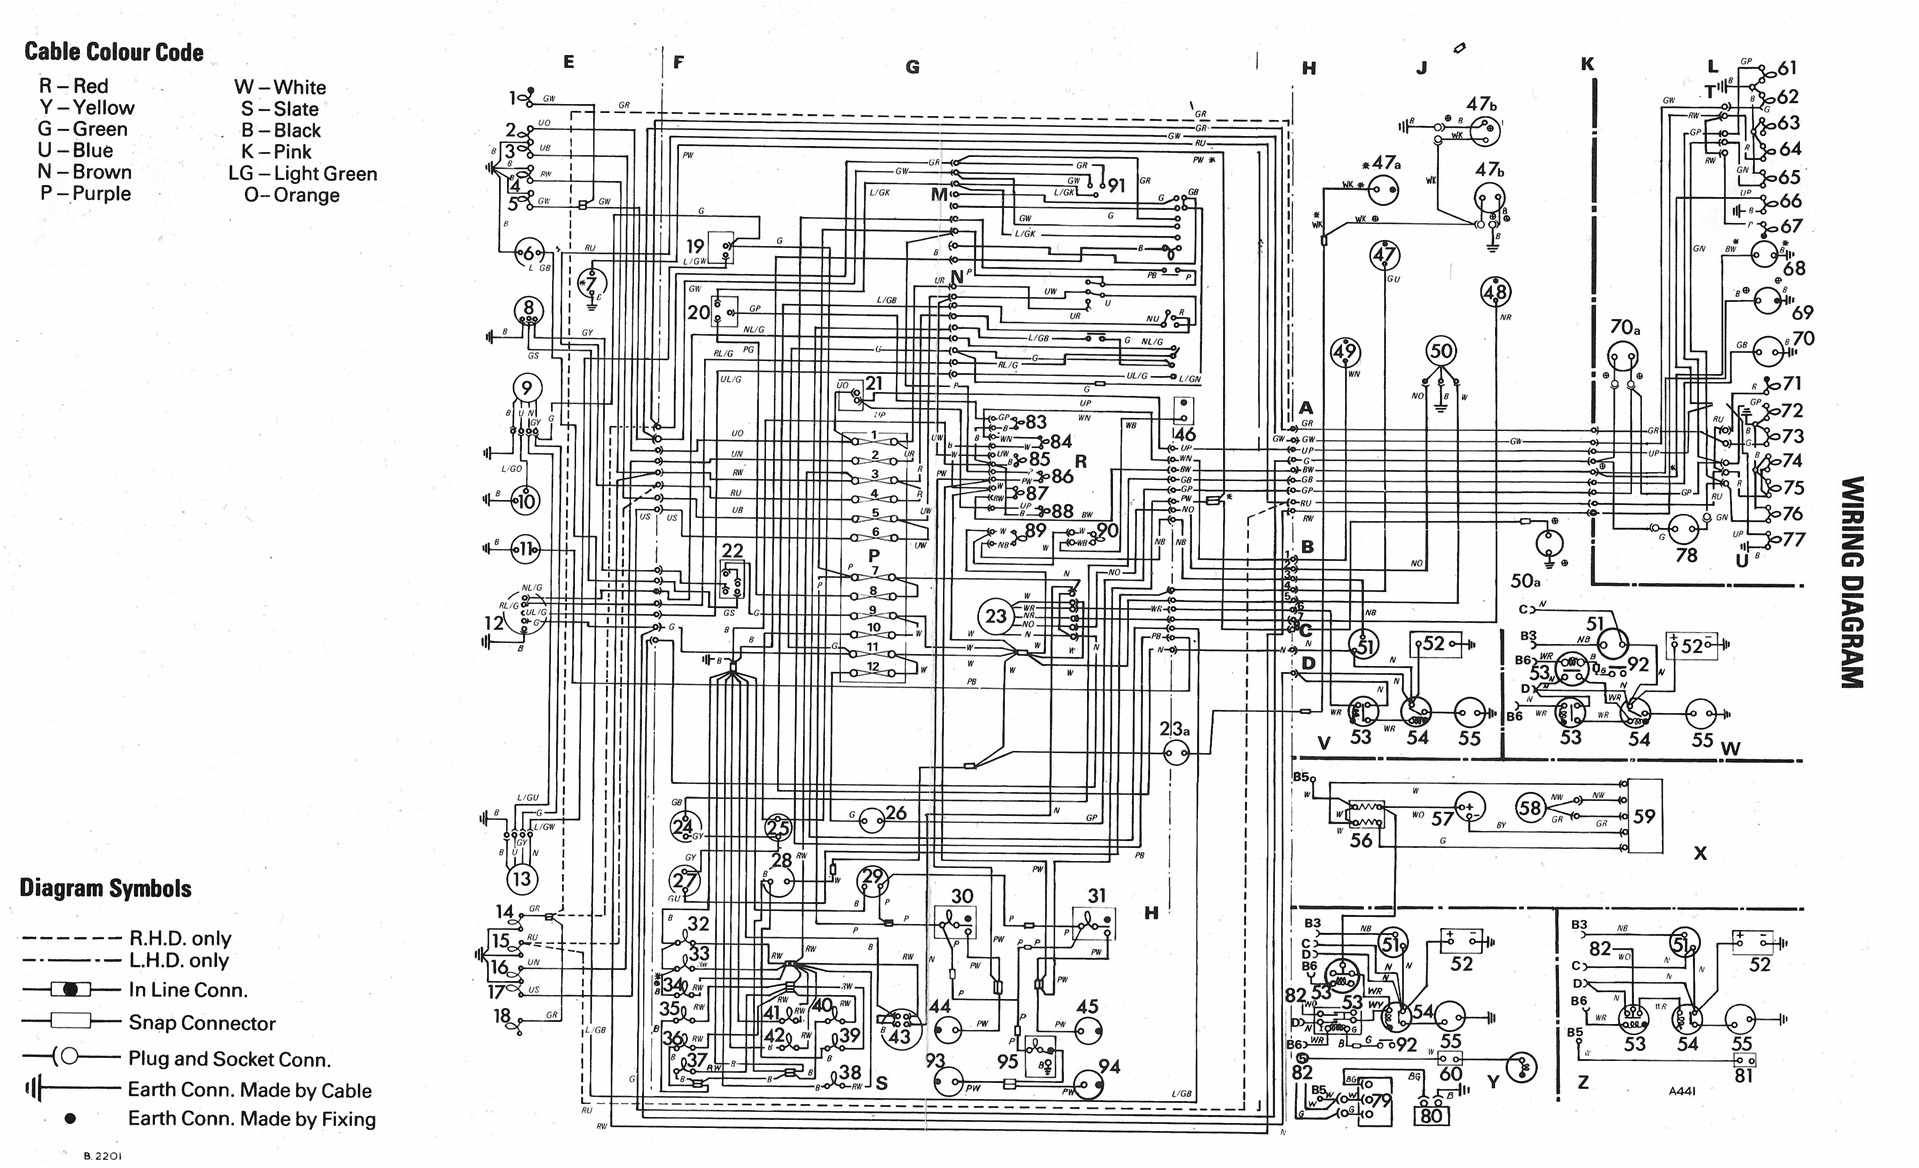 482800022528094020 on 1995 Nissan Pick Up Fuse Box Diagram